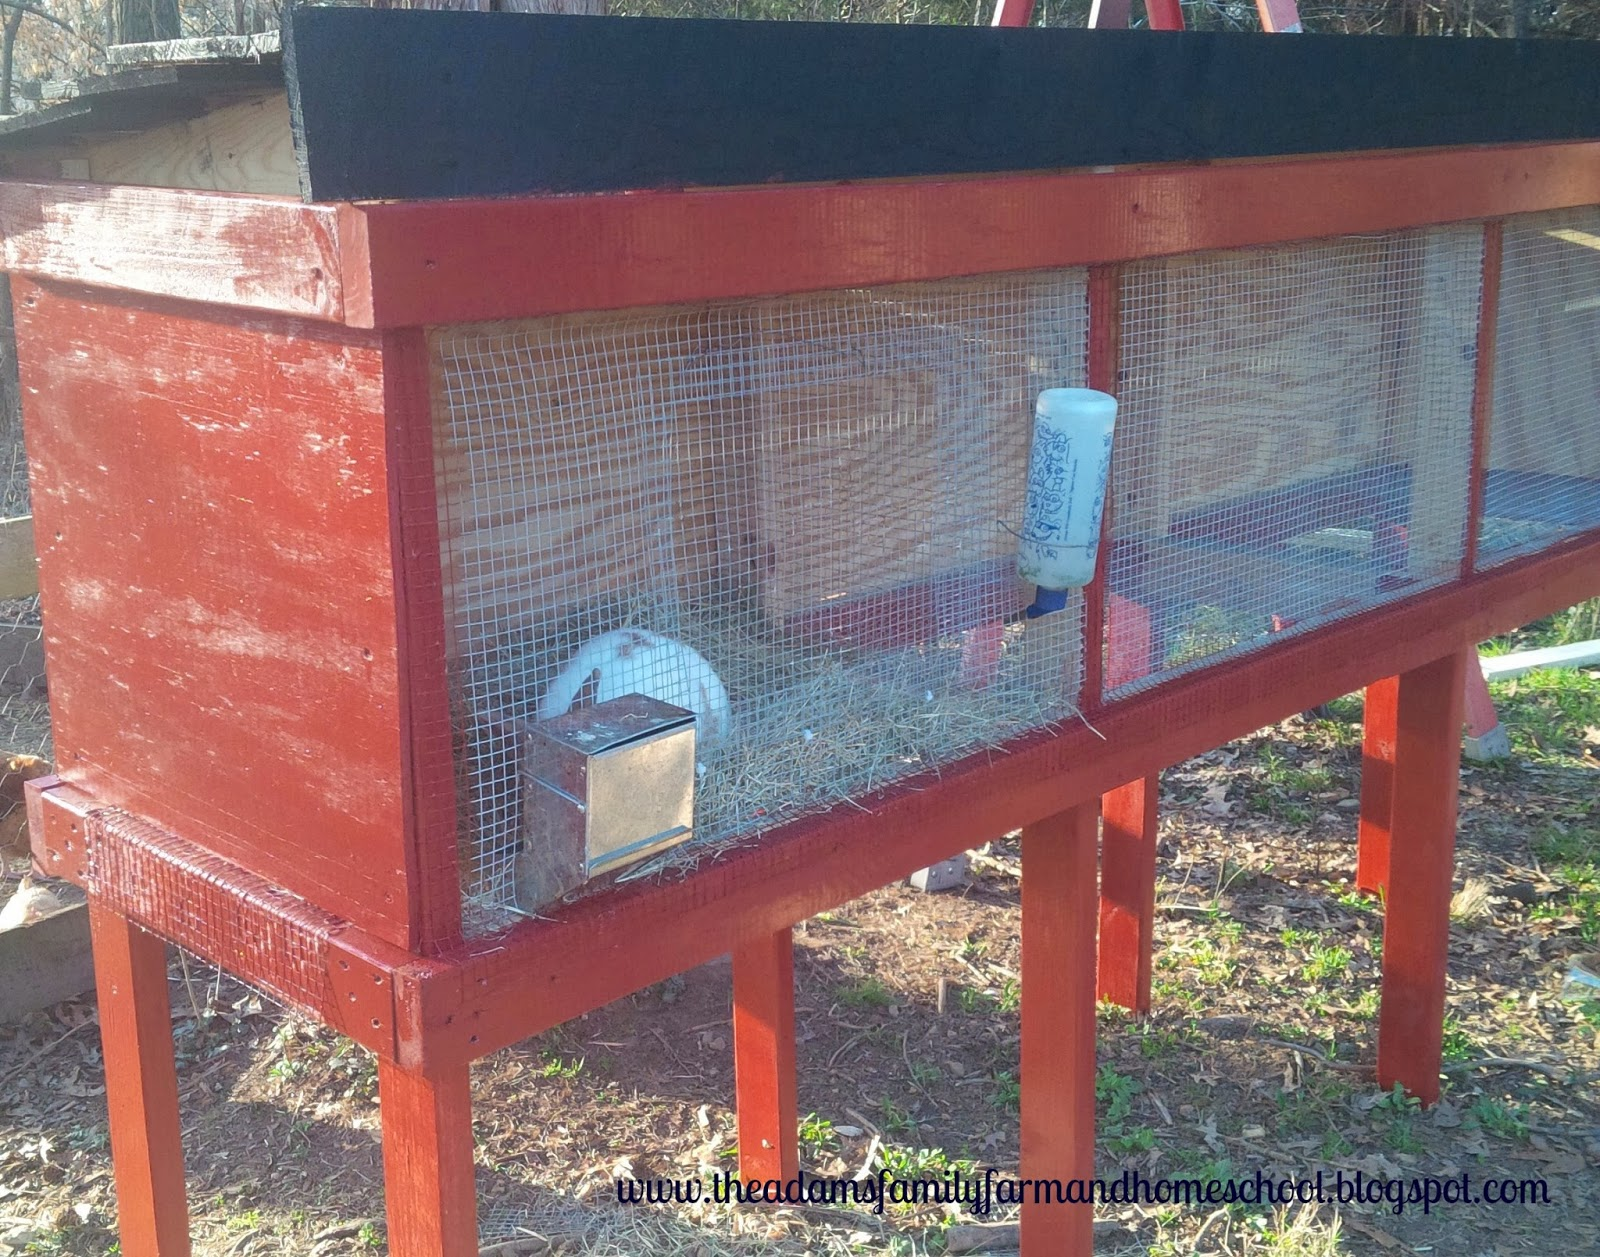 Finished Rabbit Cage with Rabbit Inside